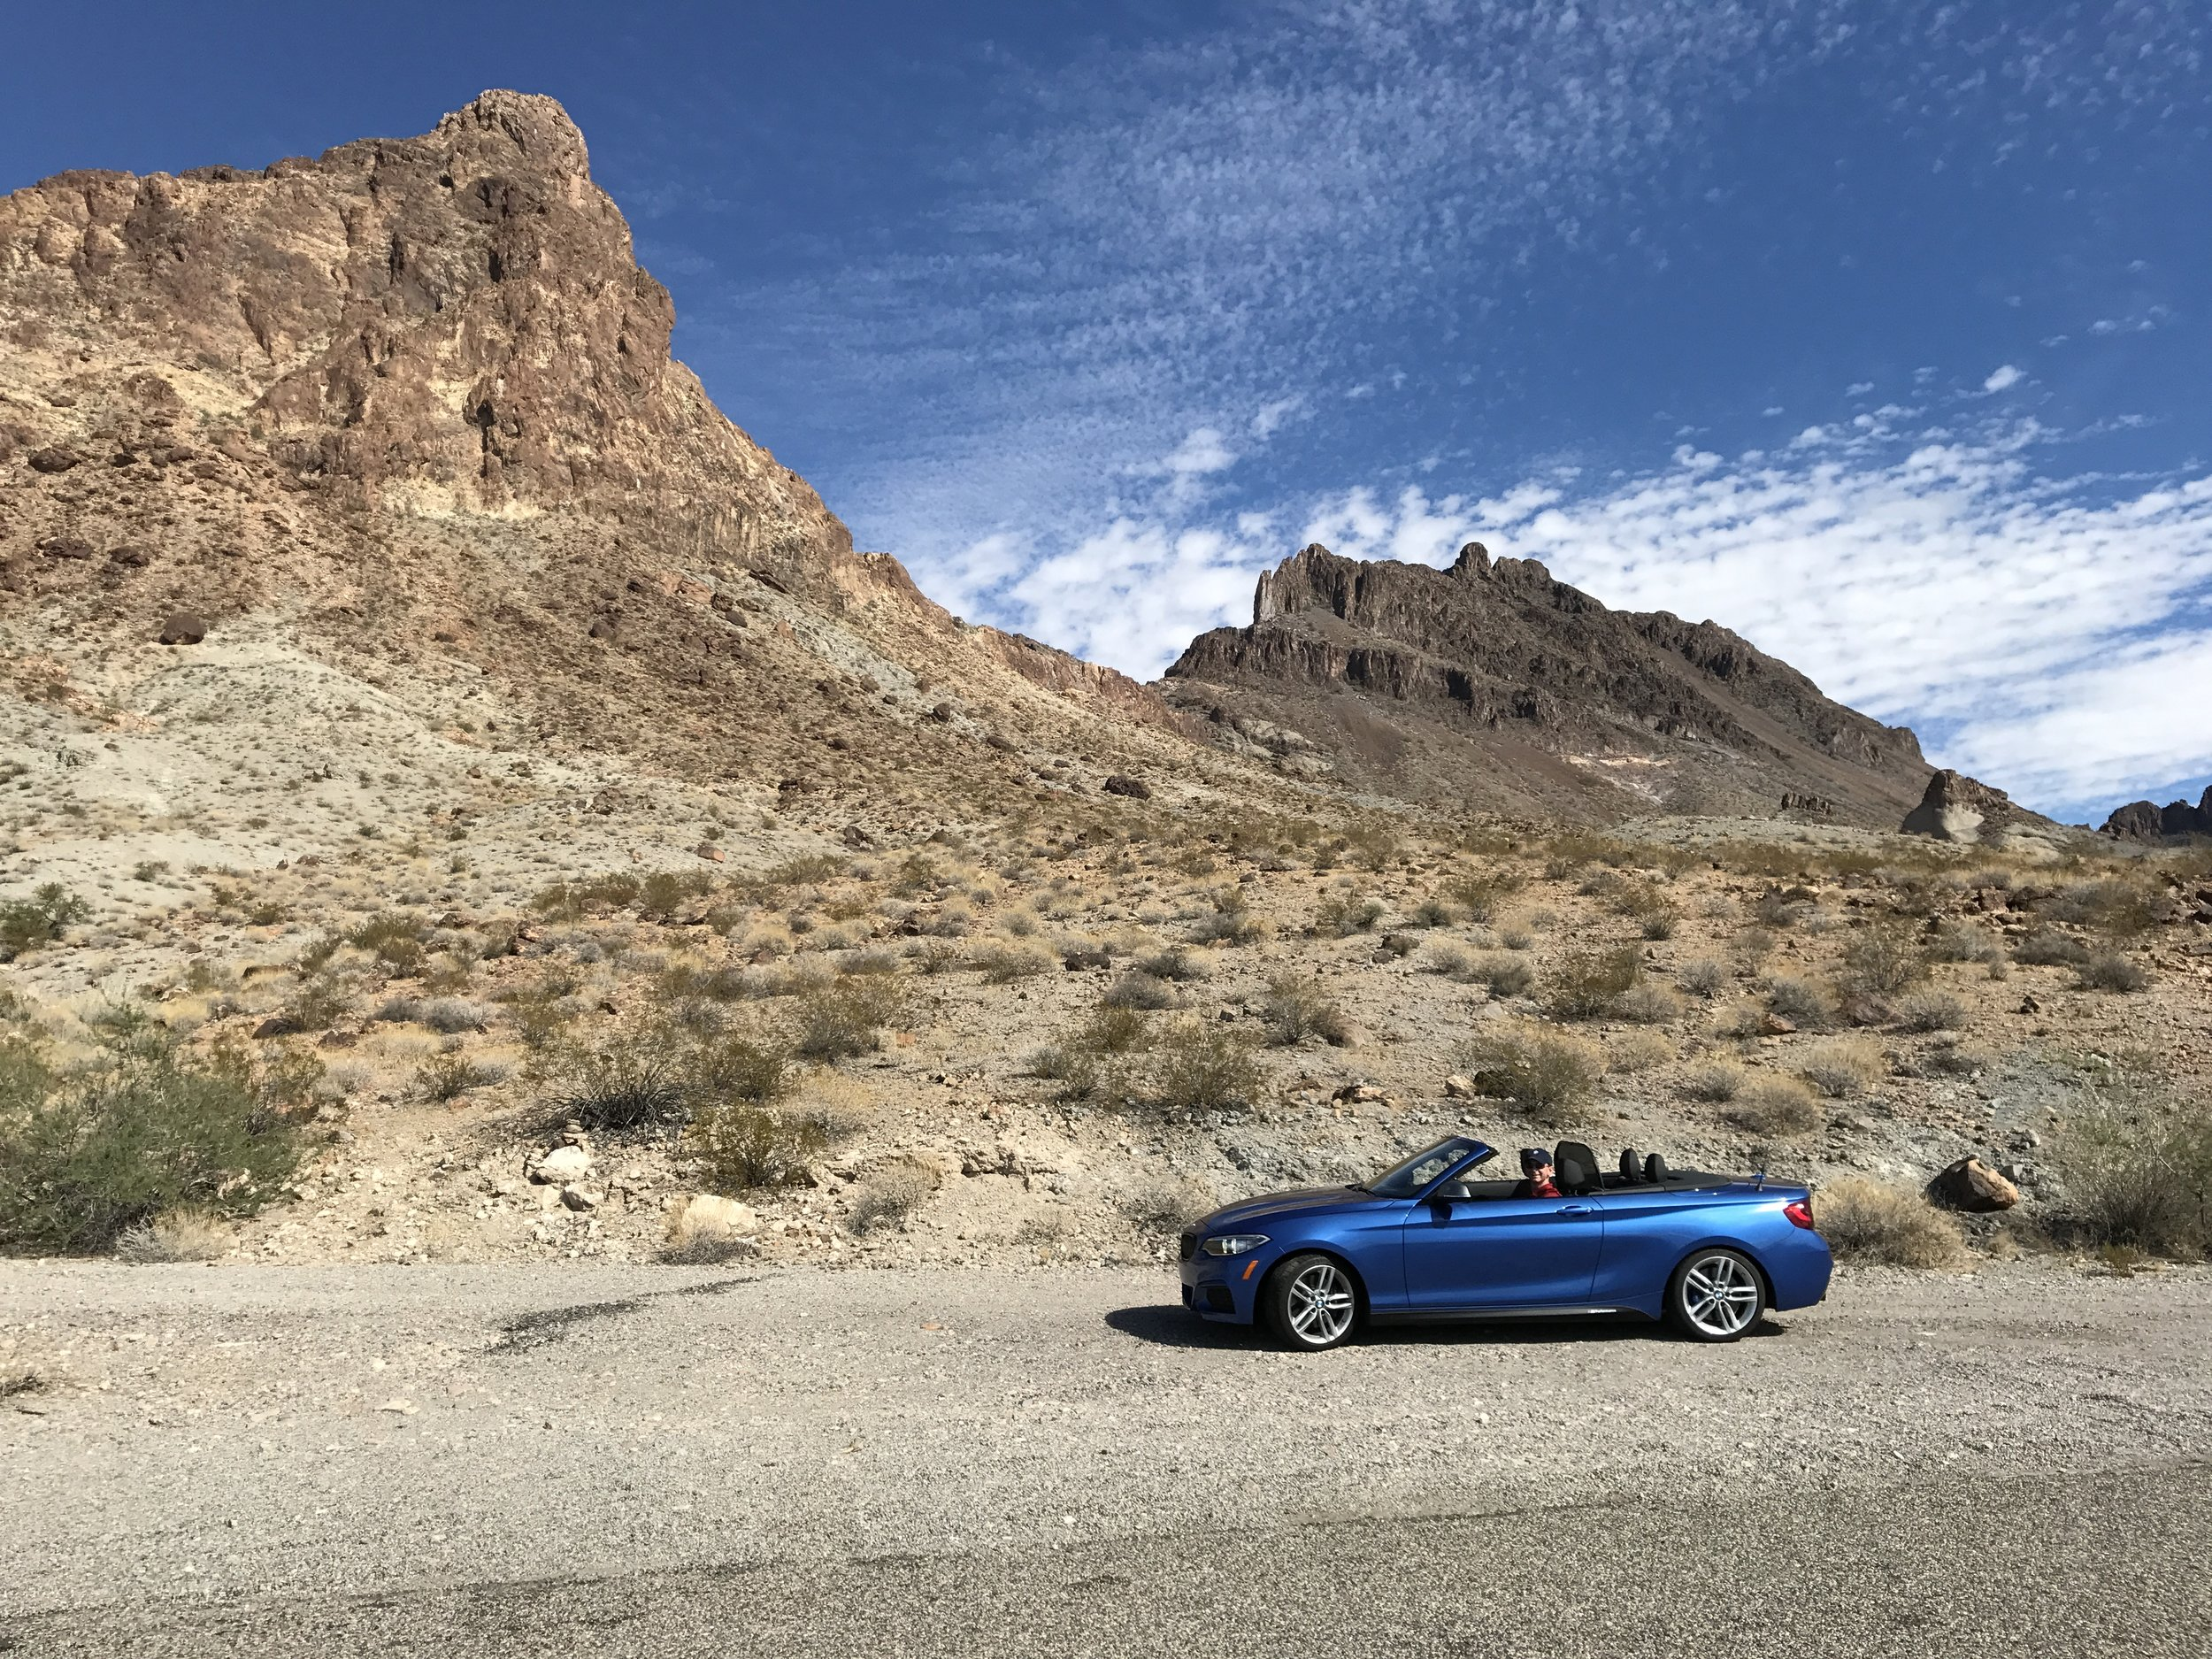 The Desert and the BMW